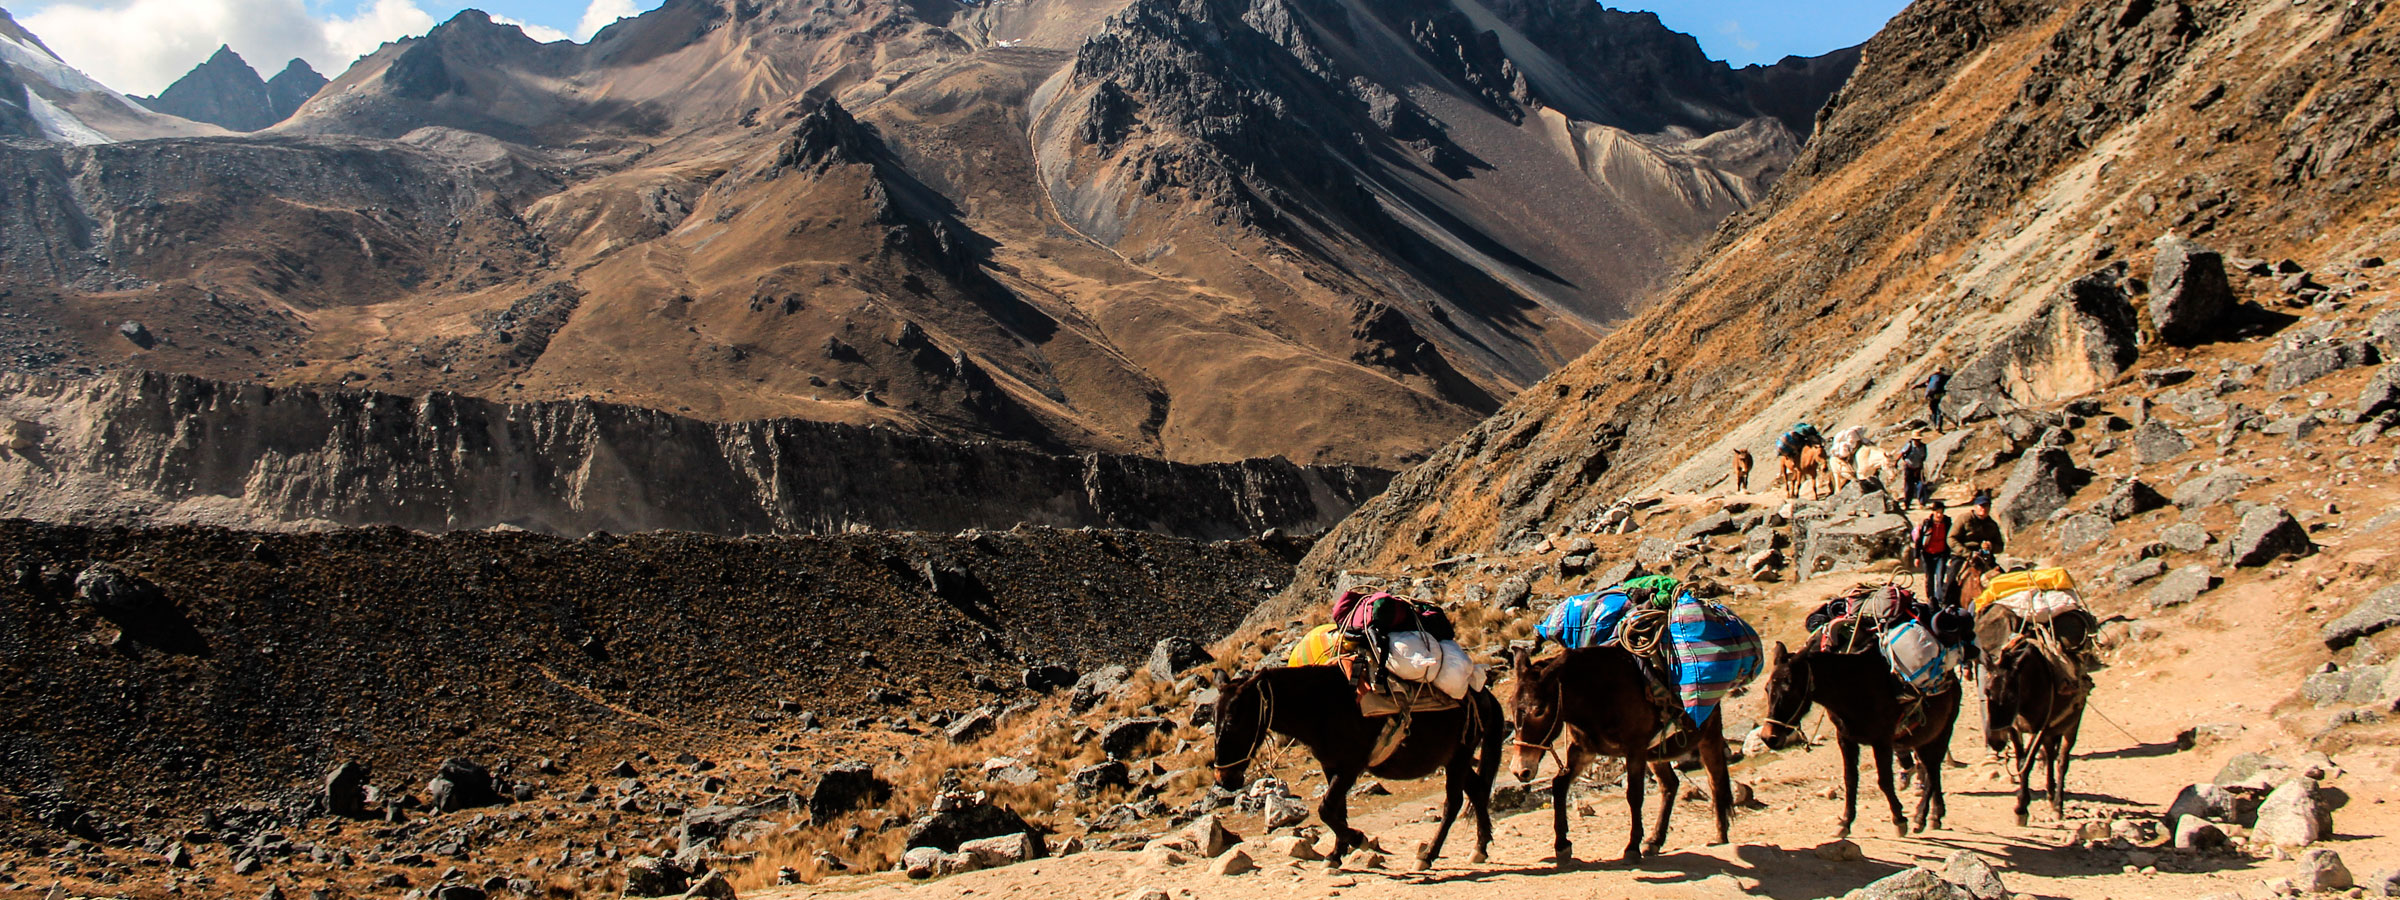 This trek combines the beauty of the mountains with a cultural visit to two different villages, deep in the mountains. Spend time learning about their culture